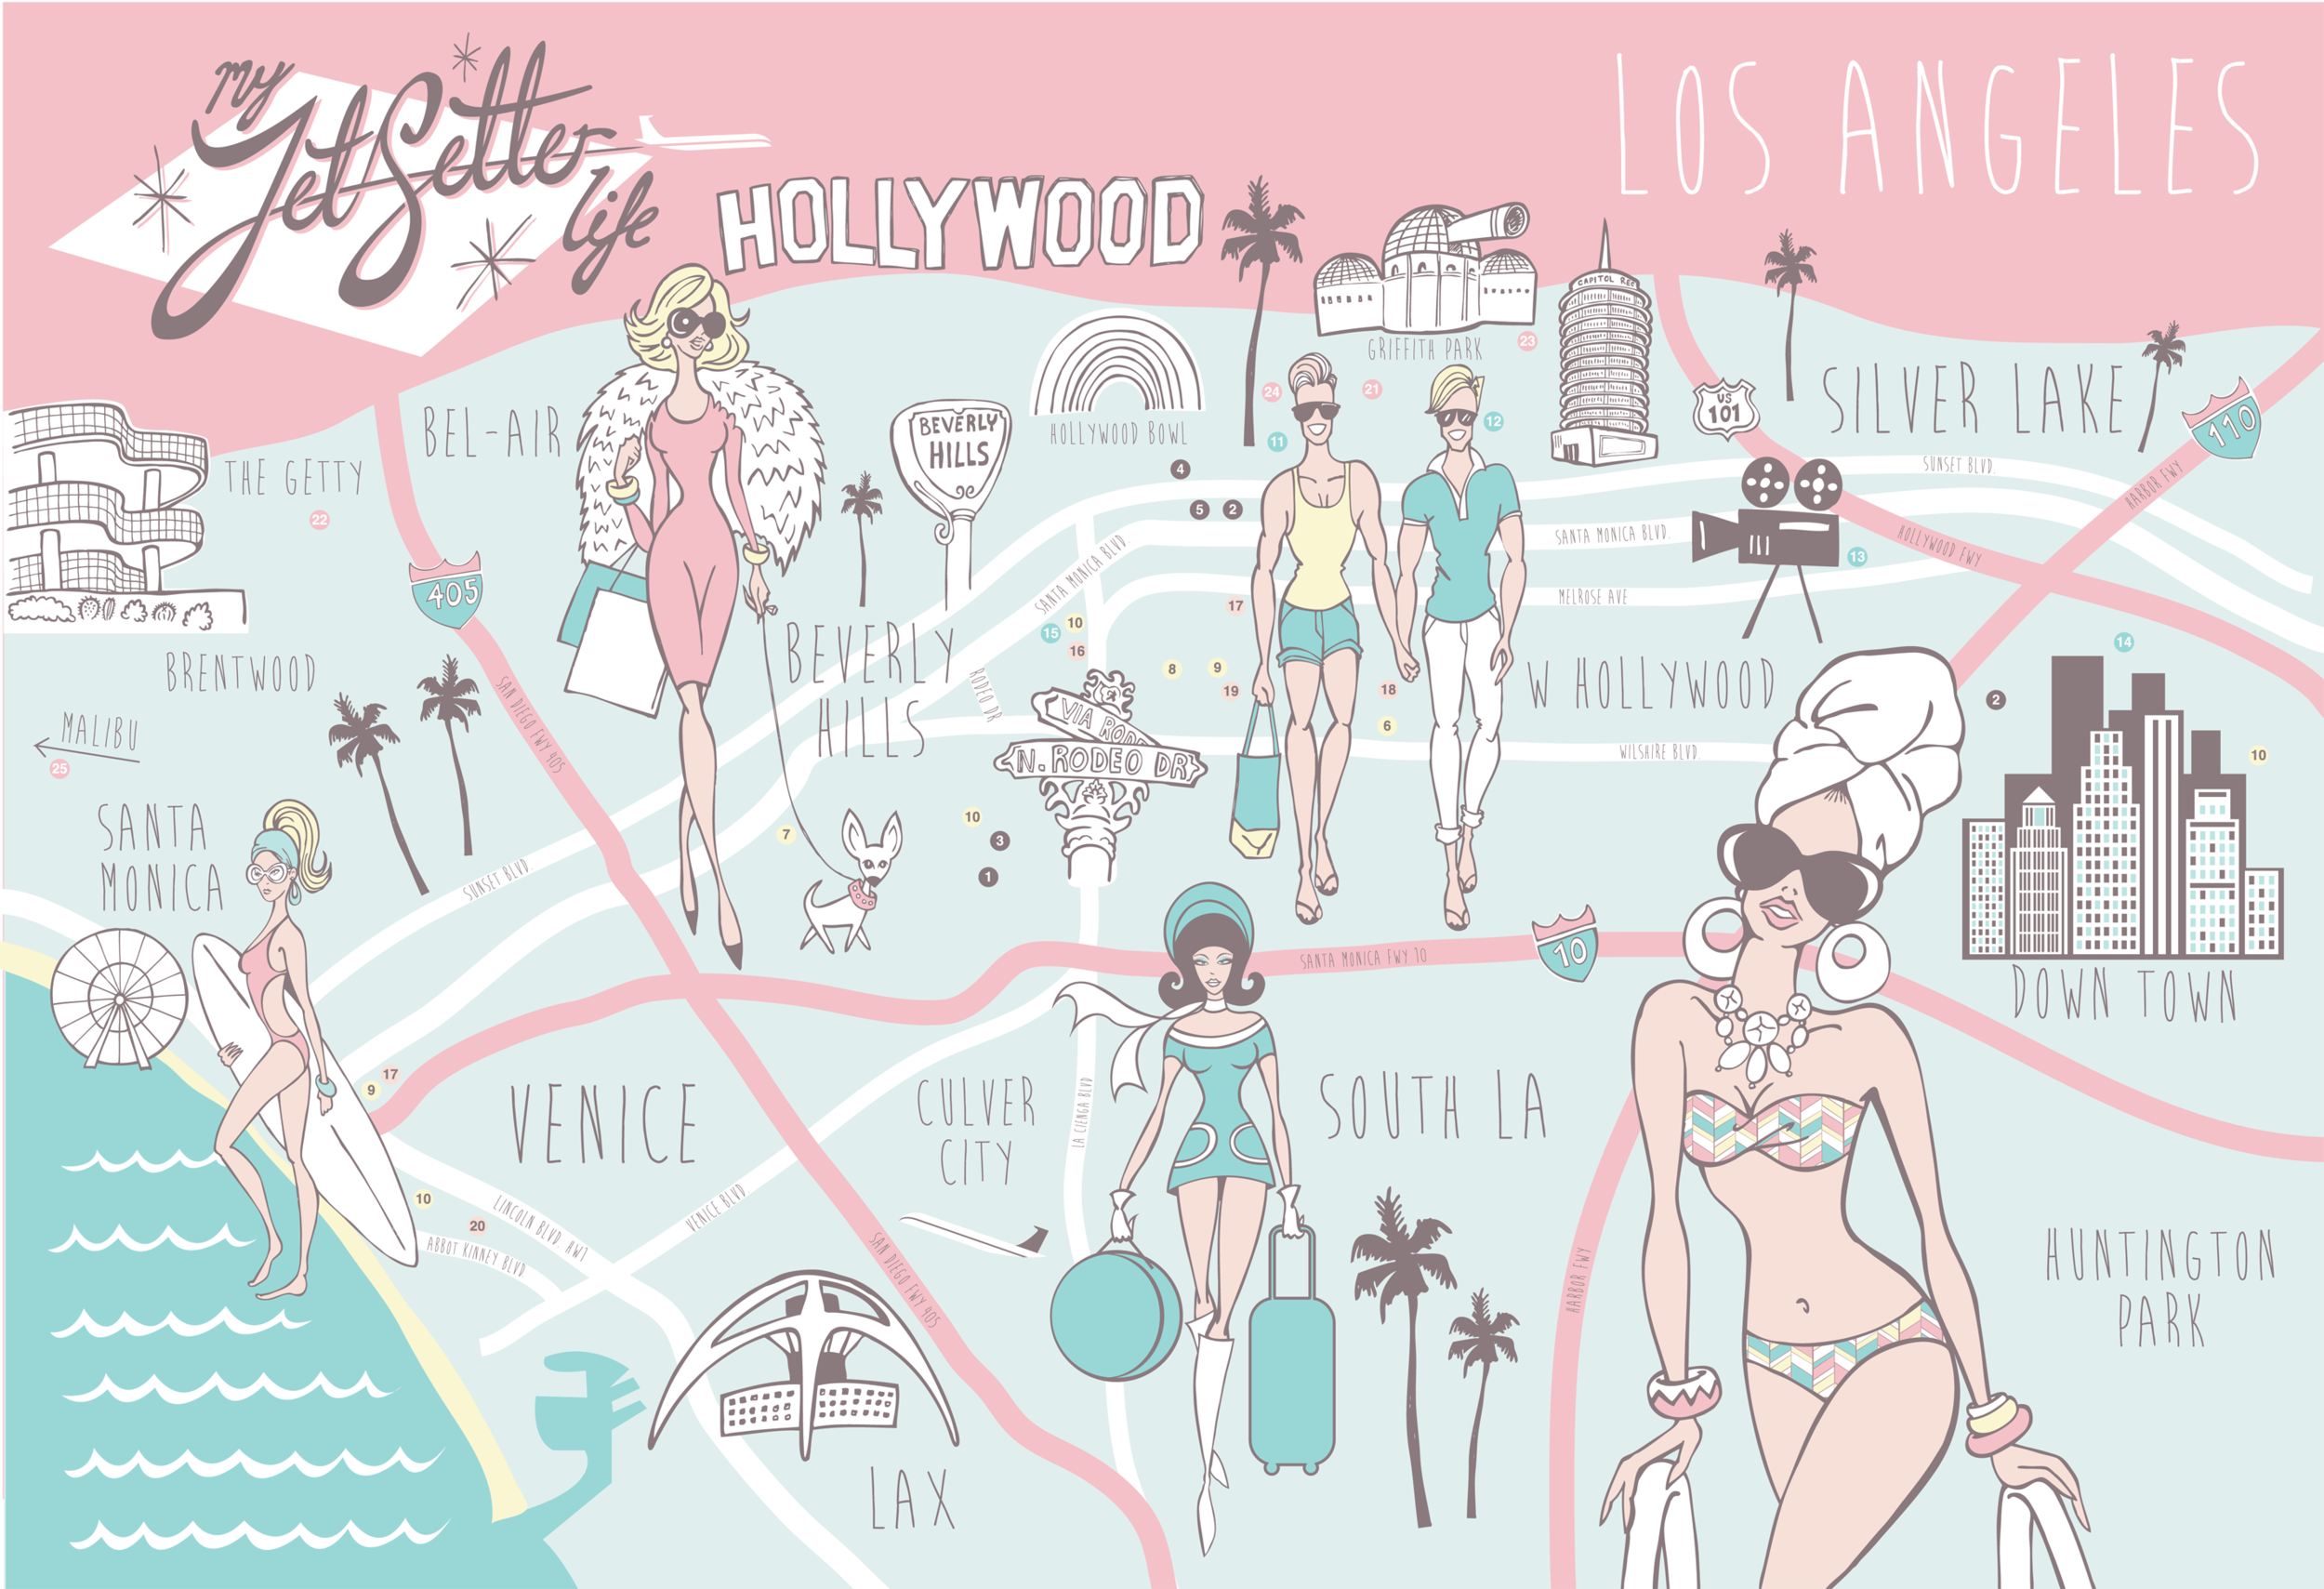 My JetSetter Life Los Angeles map